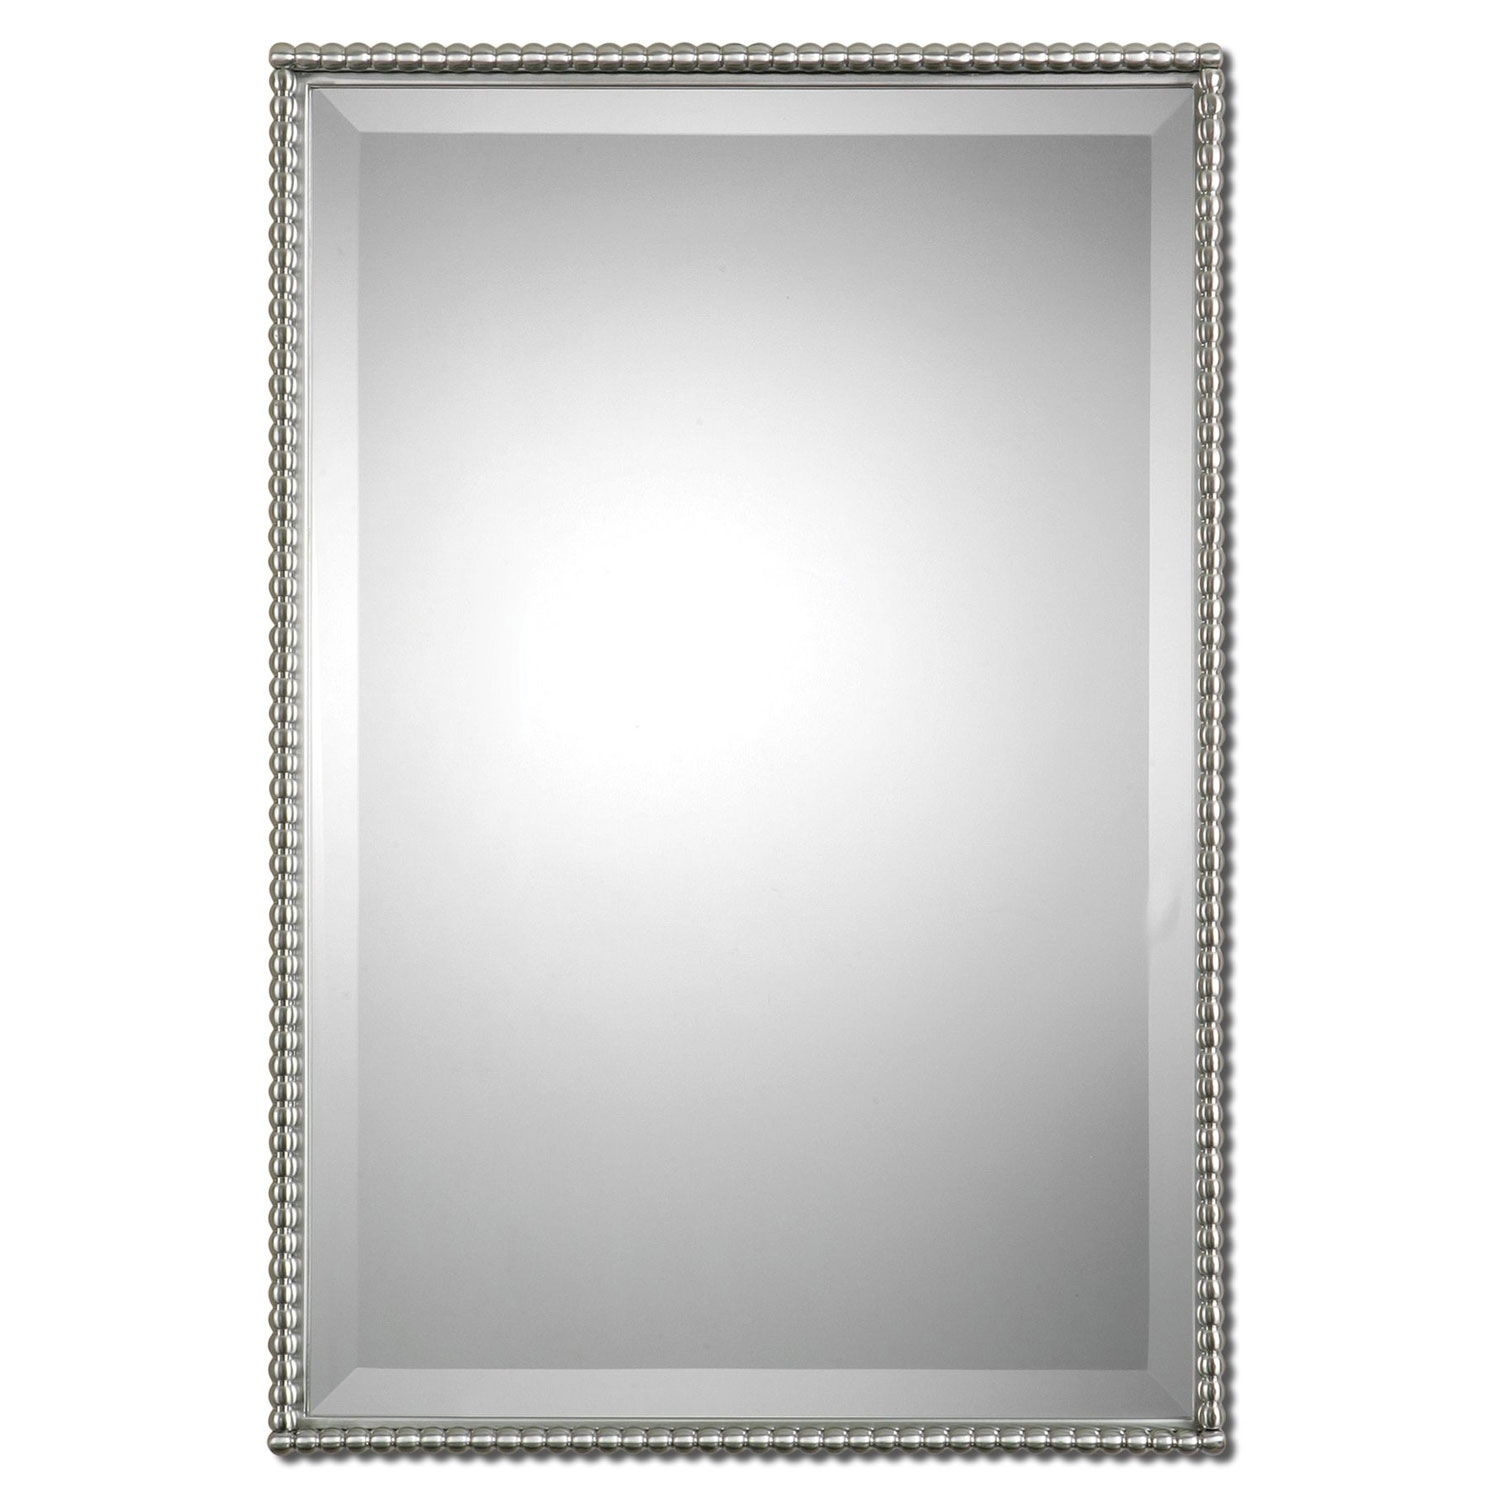 Rectangle Framed Wall Mirrors